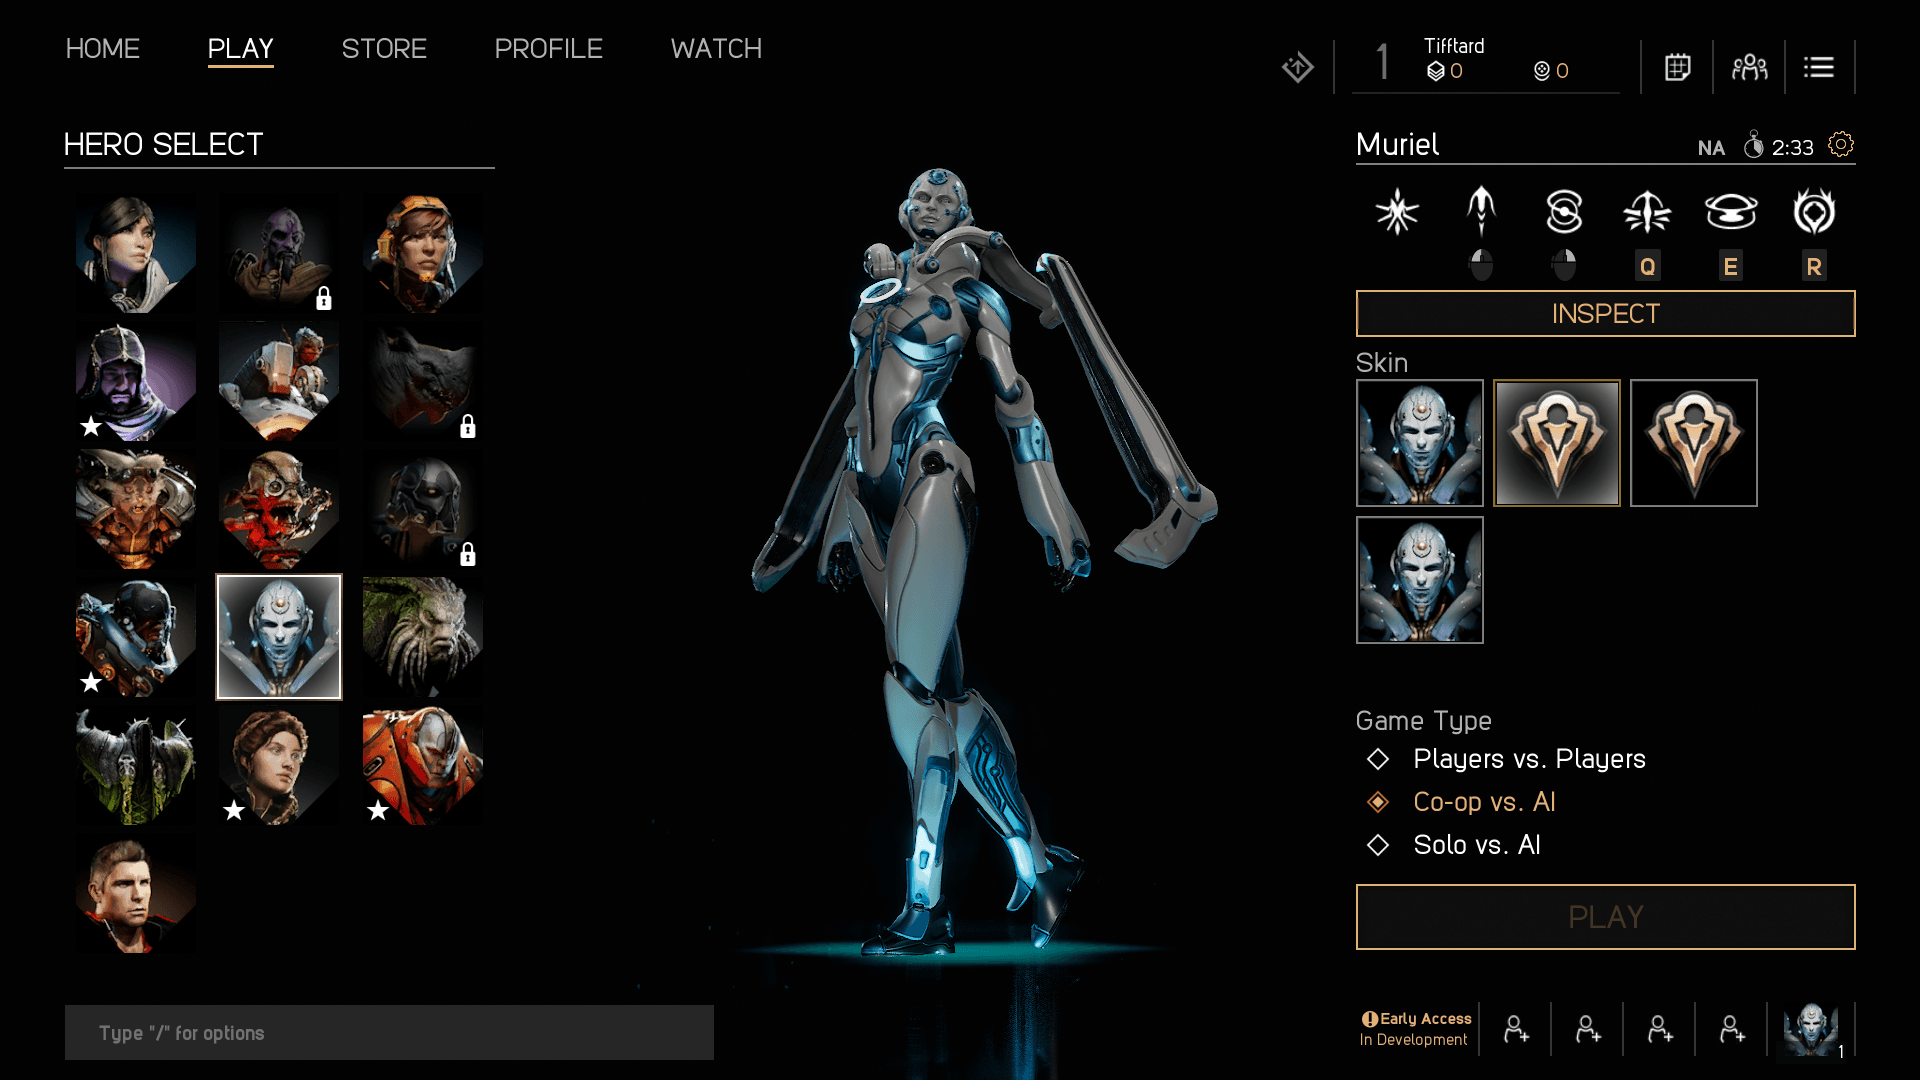 One of the unique Heroes in Paragon